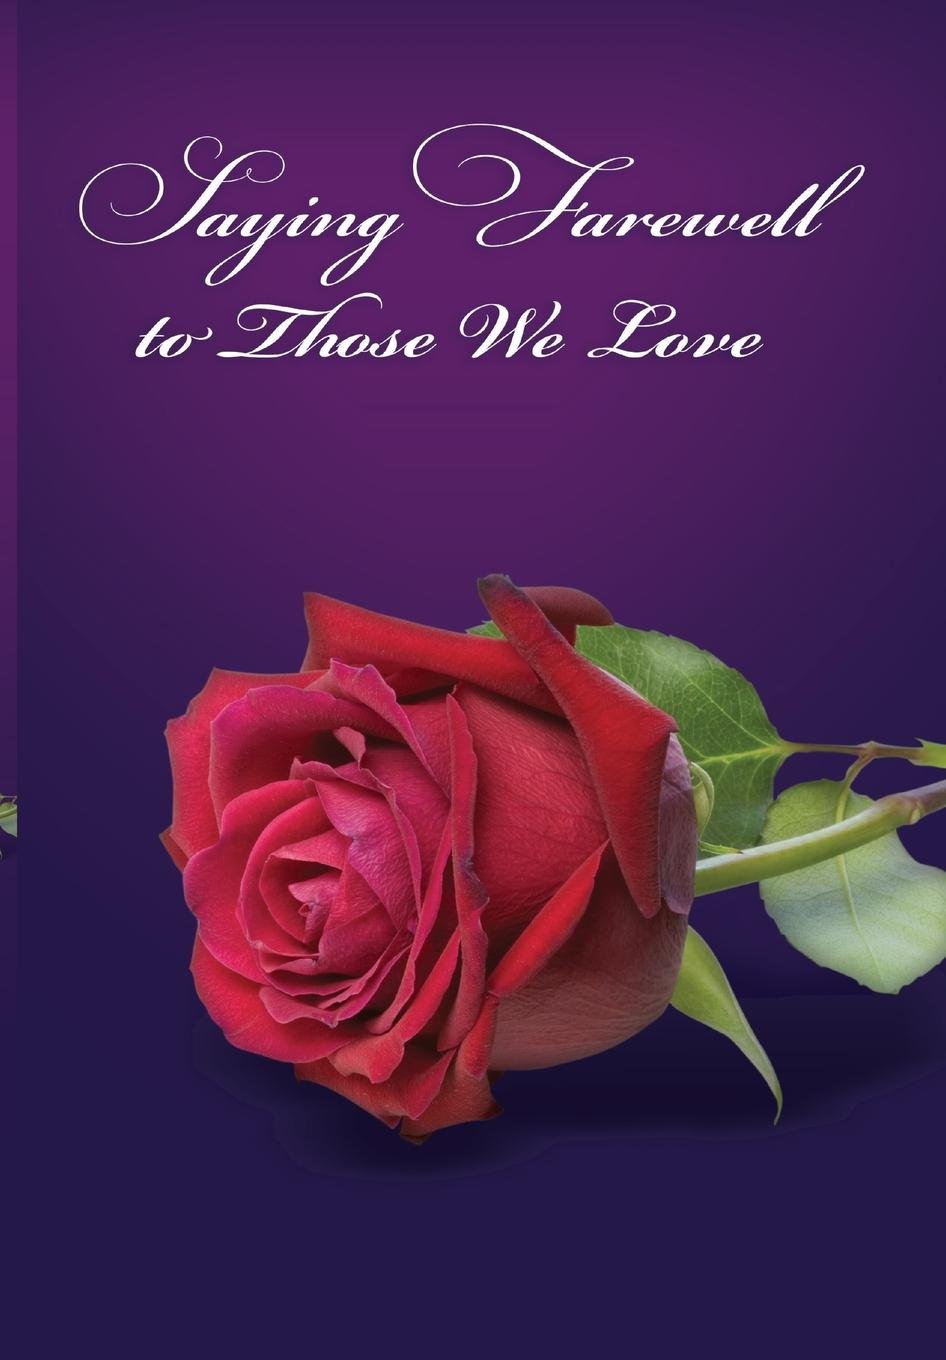 Saying Farewell to Those We Love by JoJo Publishing